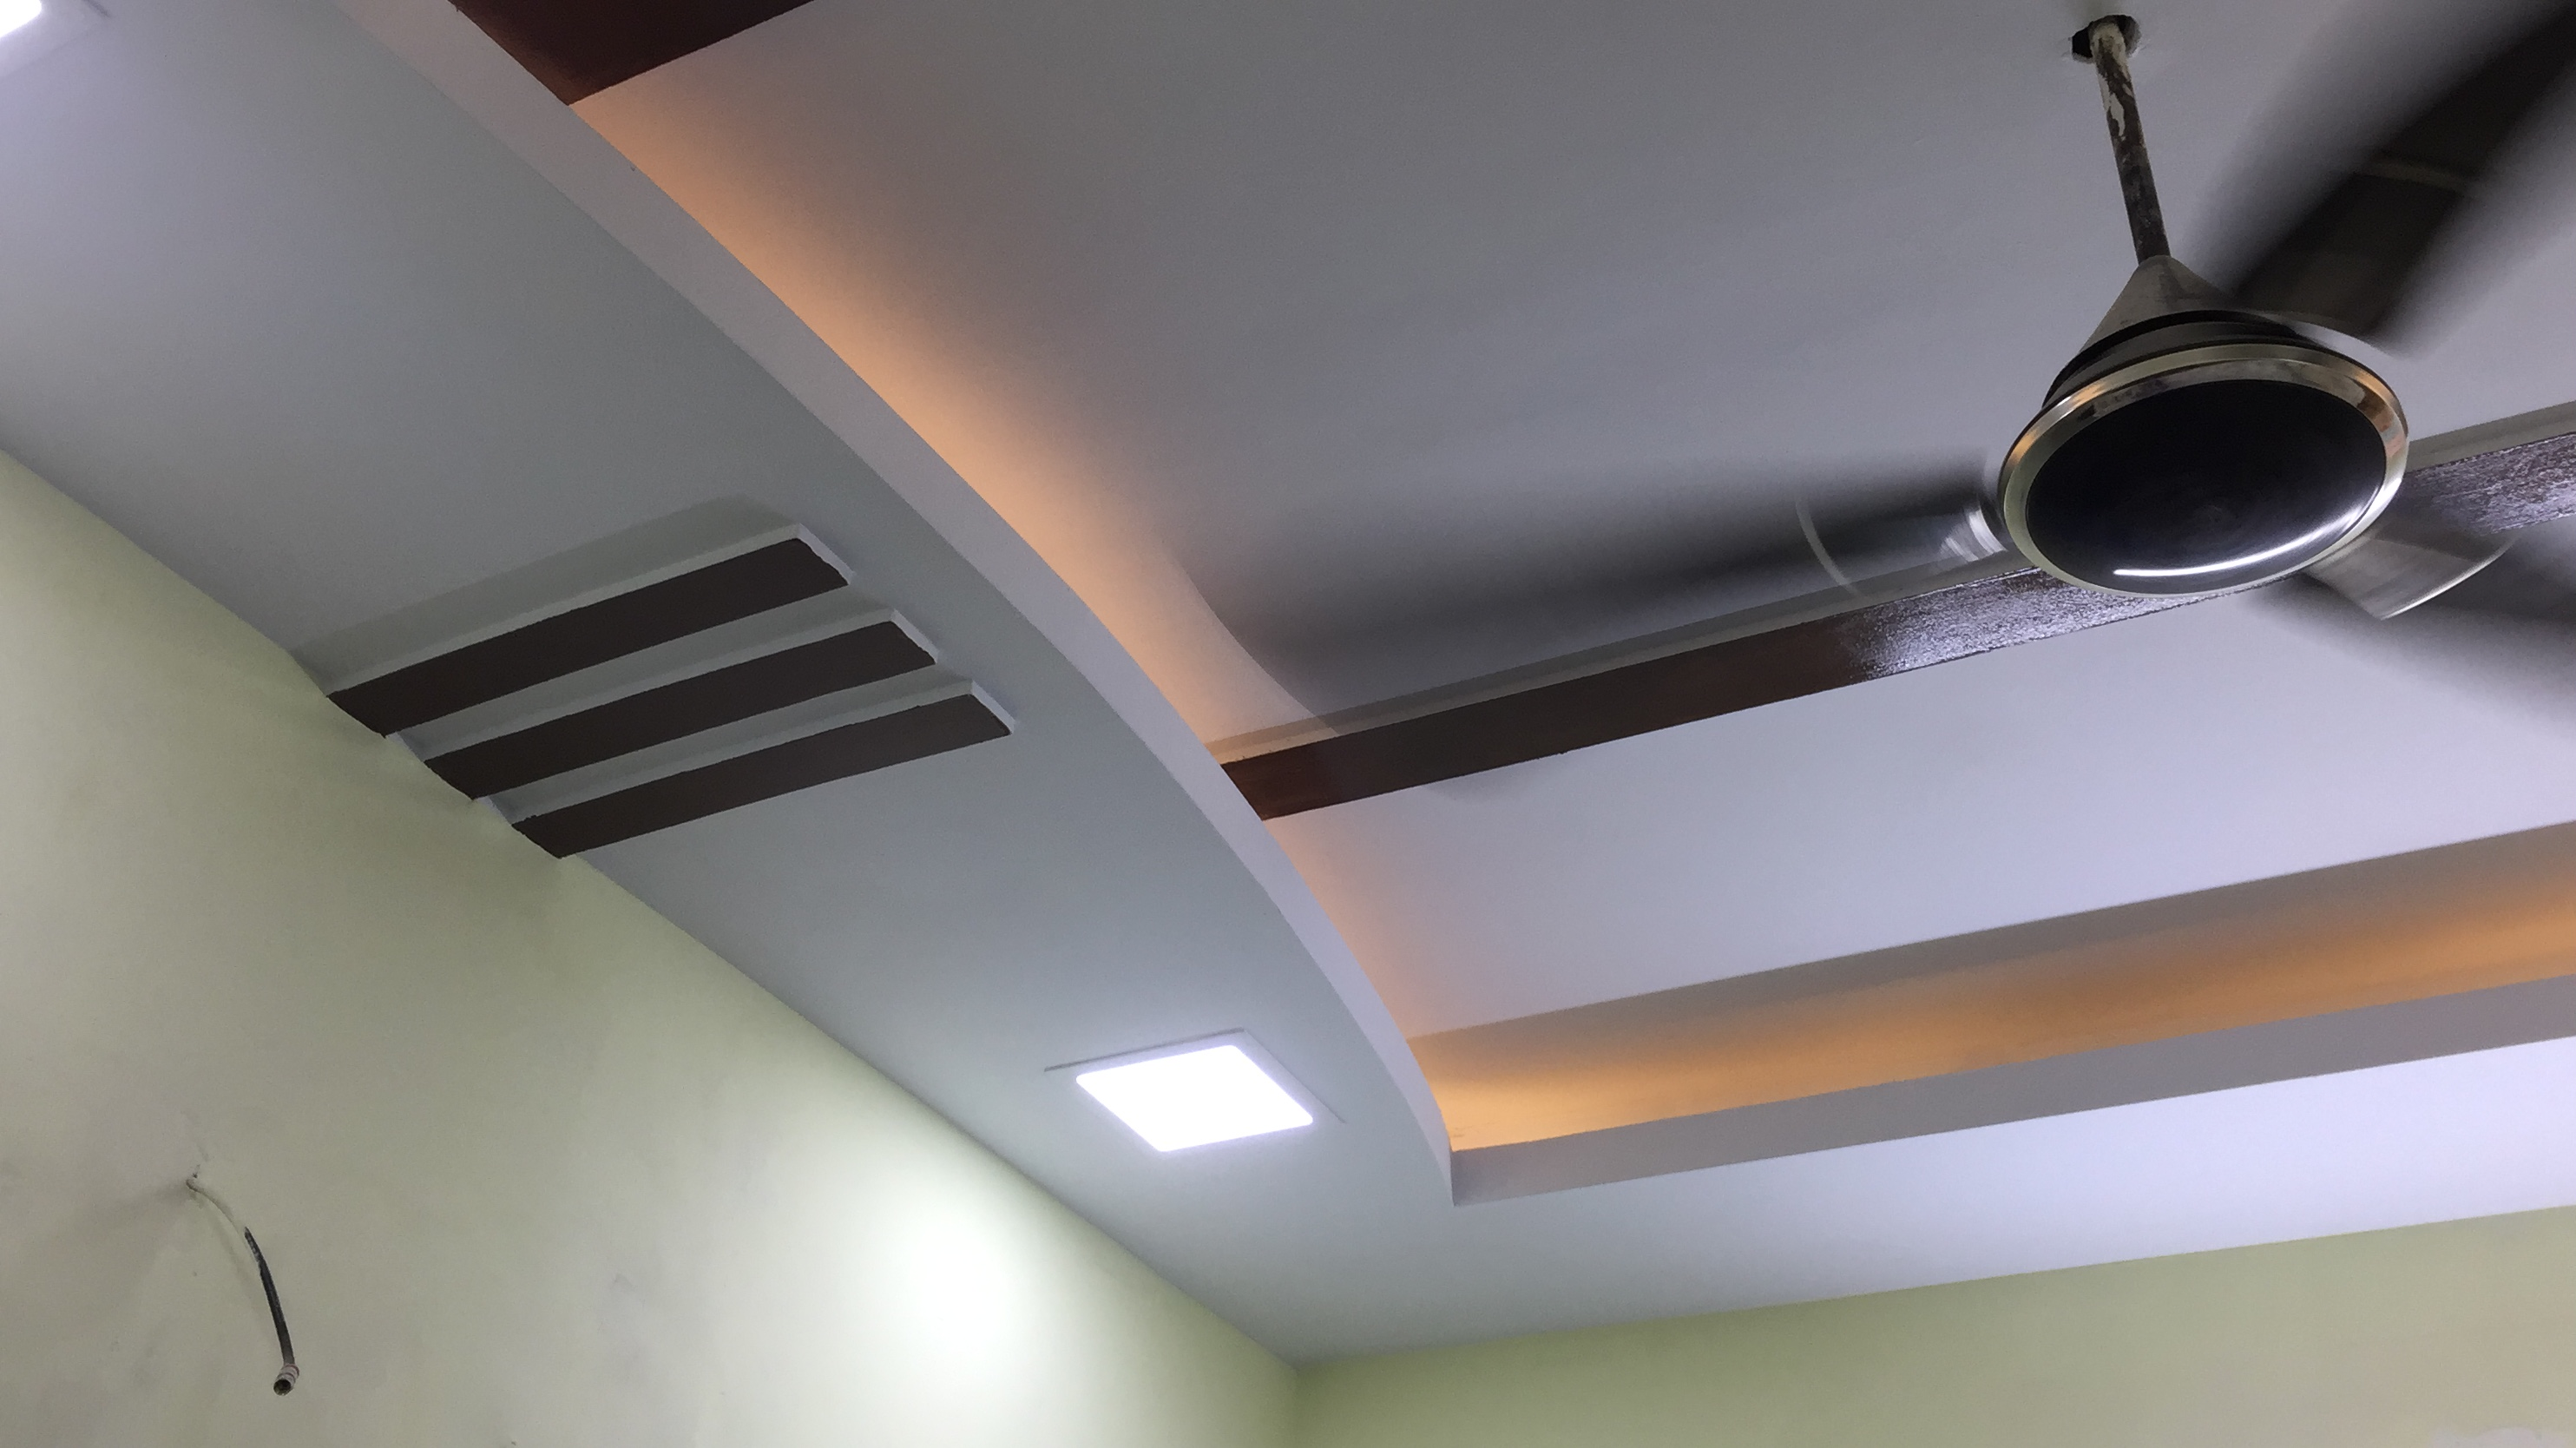 roof ceiling design , bedroom ceiling design , pop ceiling design , false ceiling